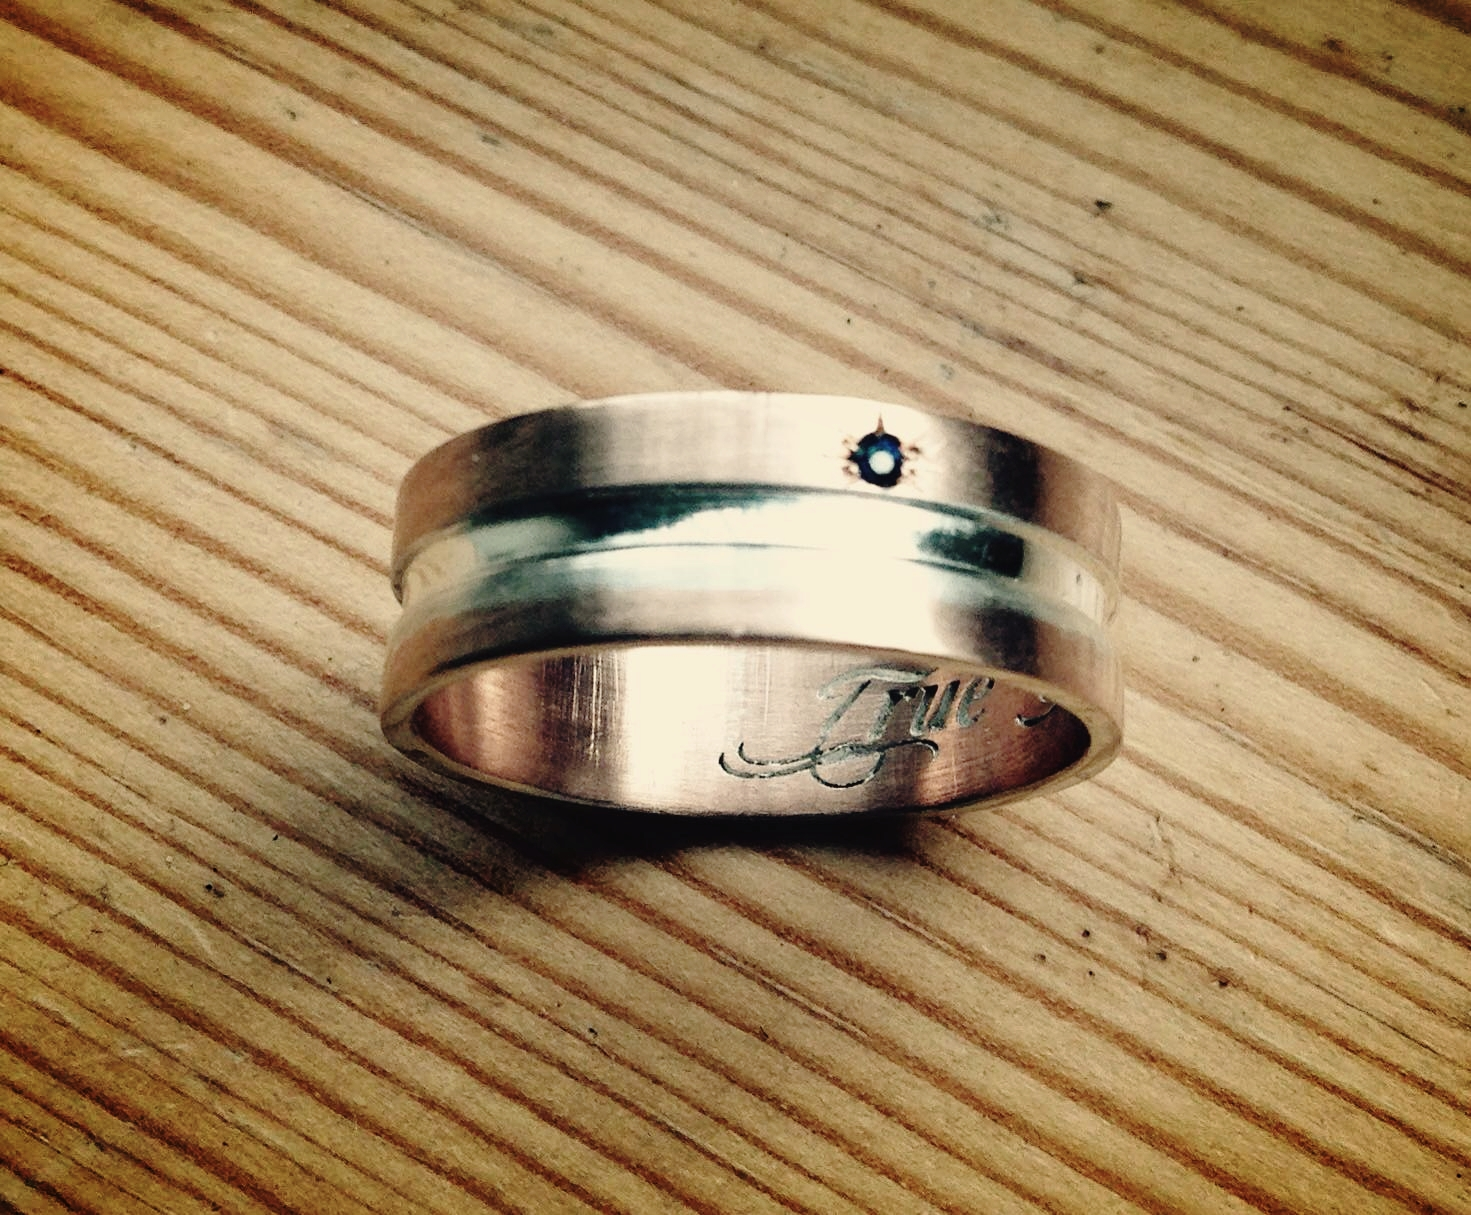 bespoke jewellery design rose gold wedding band